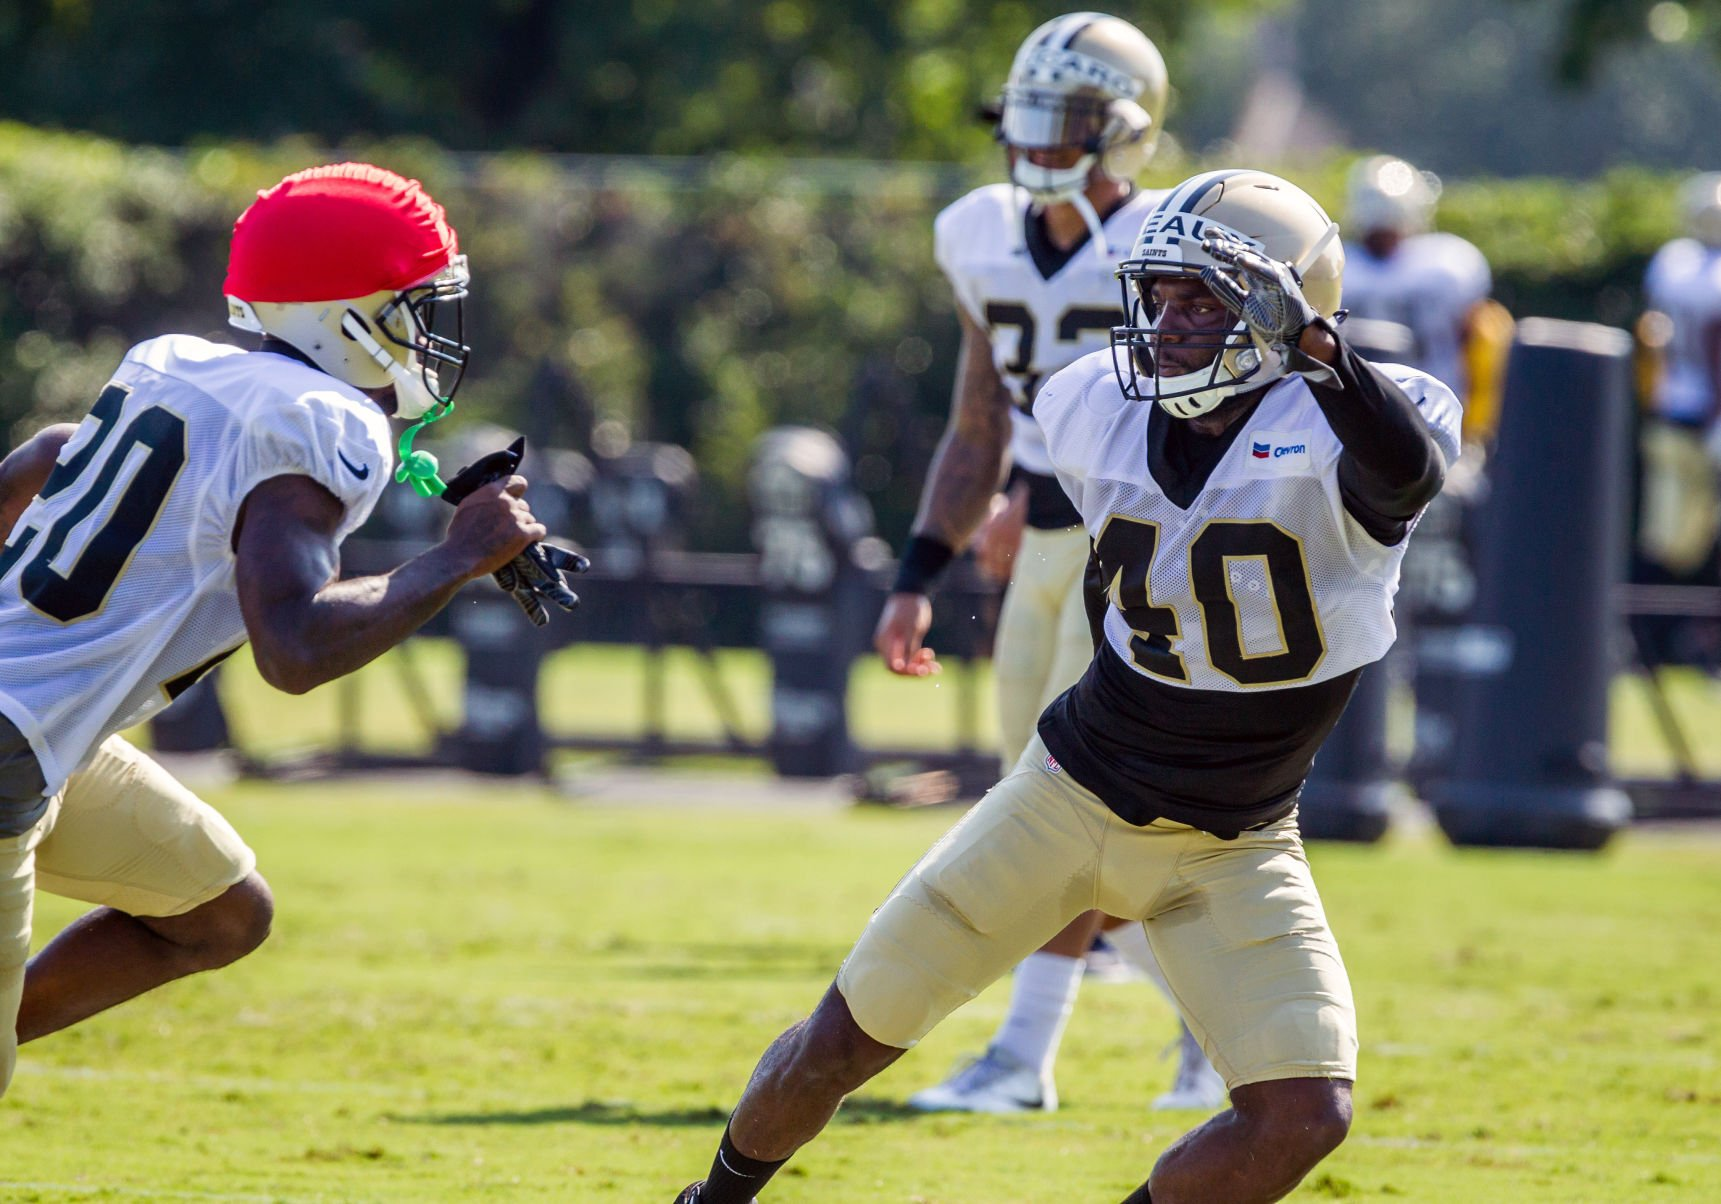 Delvin Breaux's injury more than contusion